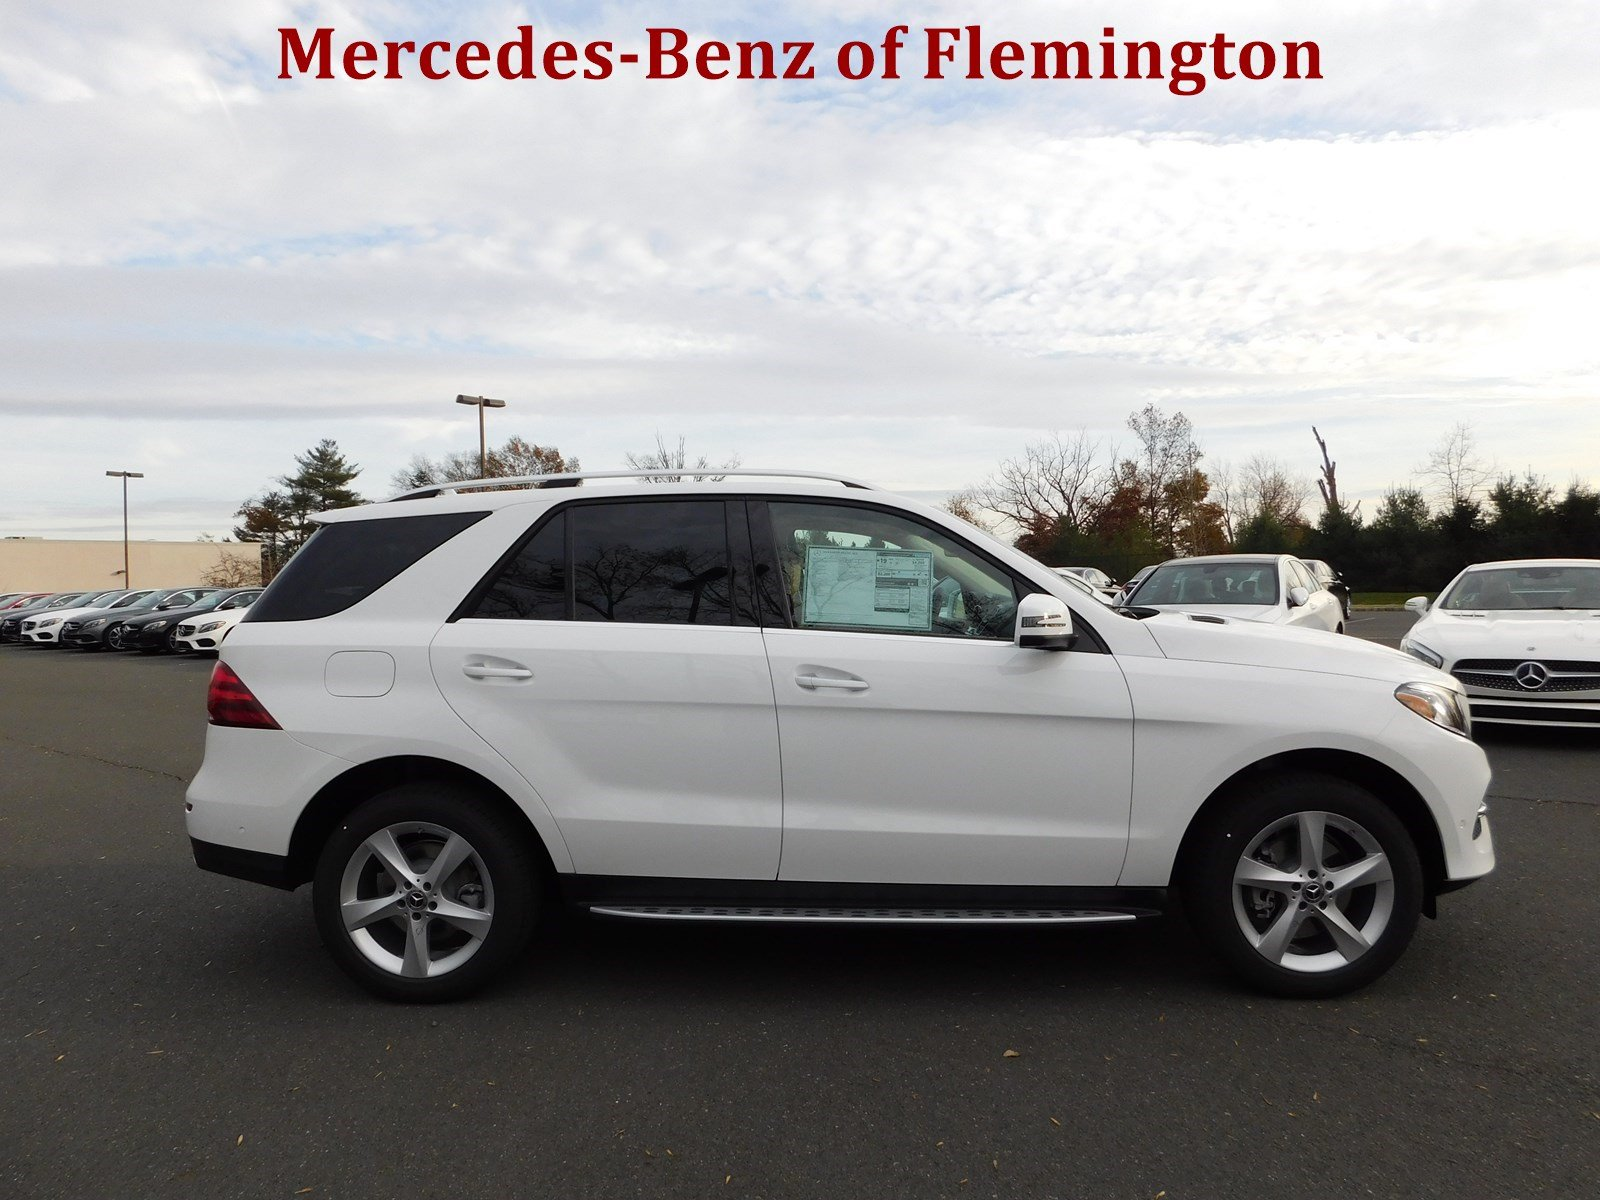 New 2018 mercedes benz gle gle 350 suv in flemington for Mercedes benz customer service email address